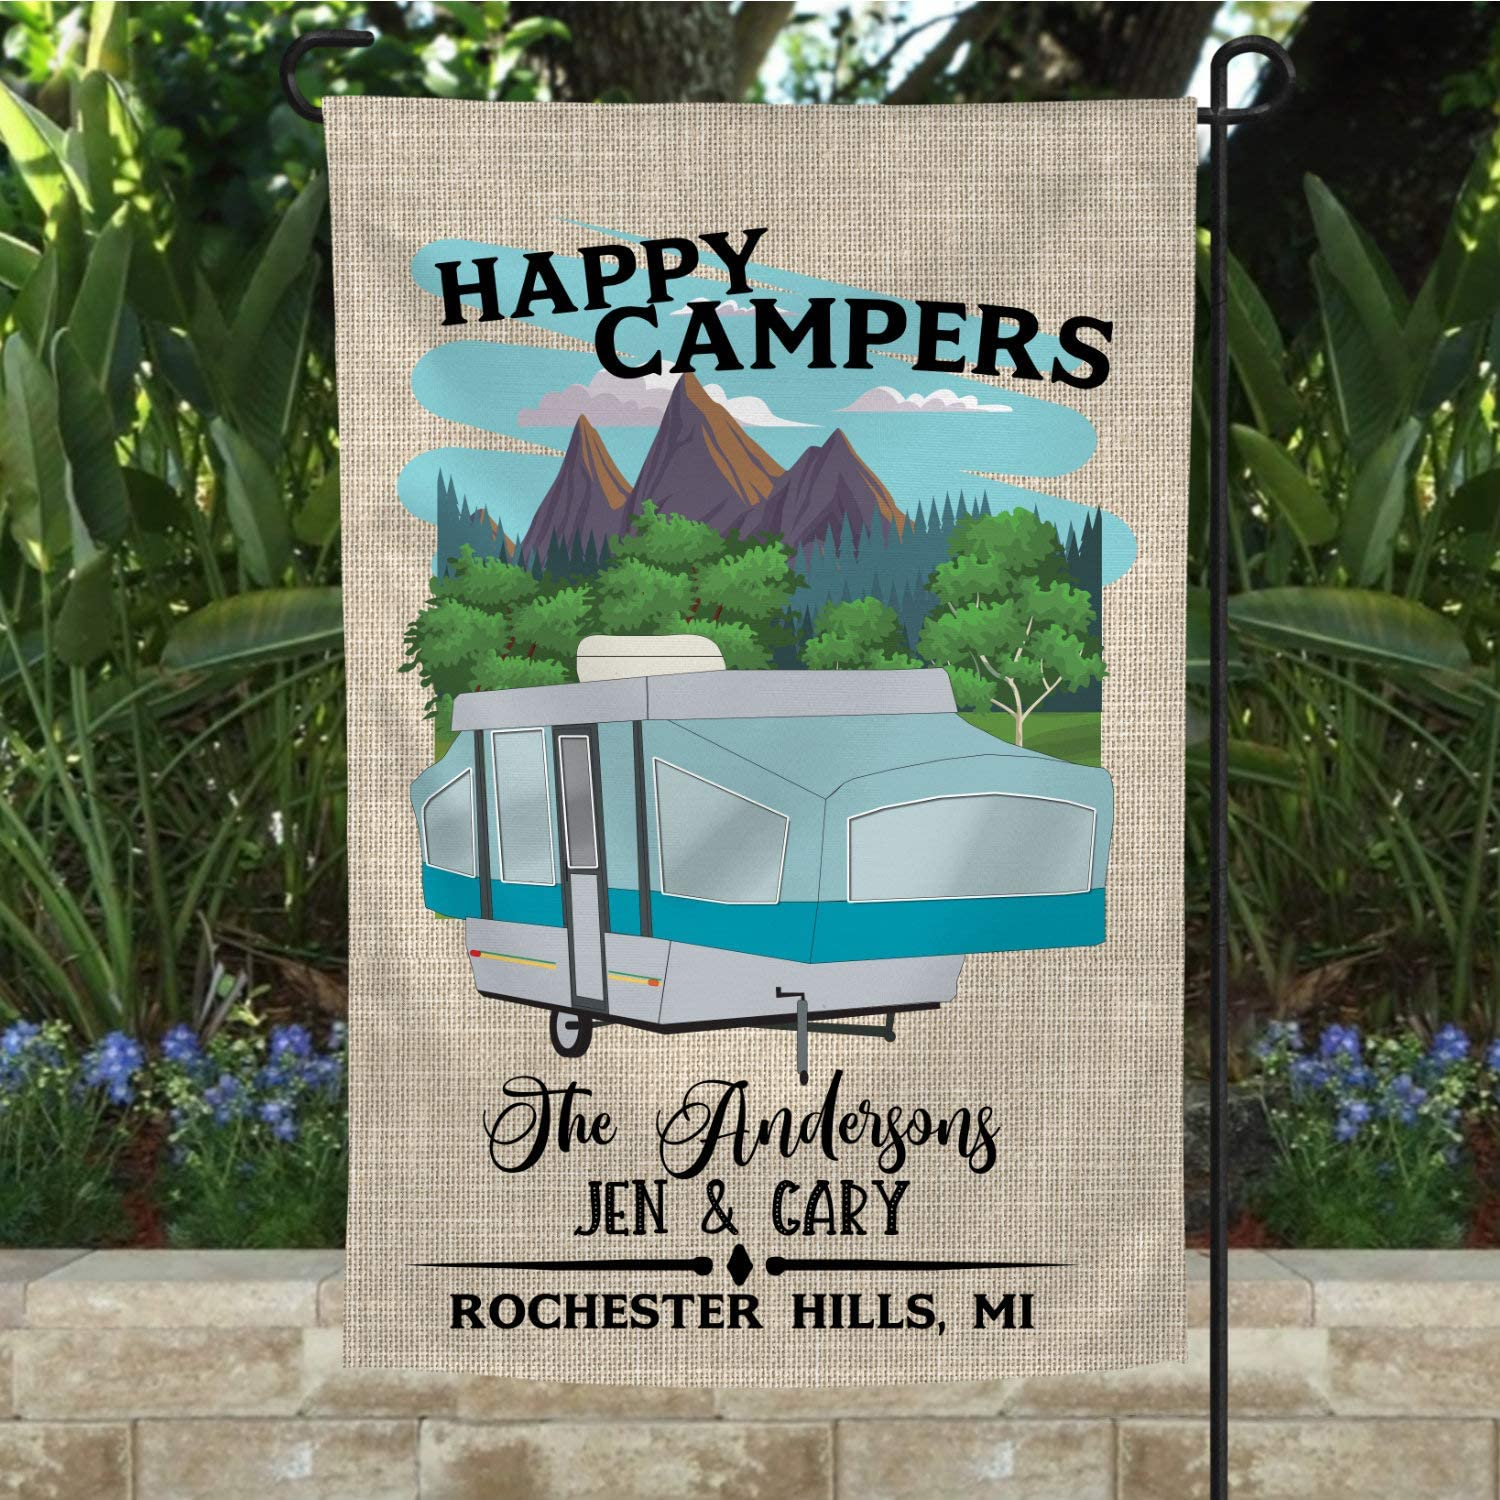 NicePodLLC Personalized Garden Flag-Happy Campers//Pop Up Camper/pop-up Camper/Camper Flag/Camper/Camping/Campsite Flag/Camper Decor/Camper Gift/Camping Gift/Flag